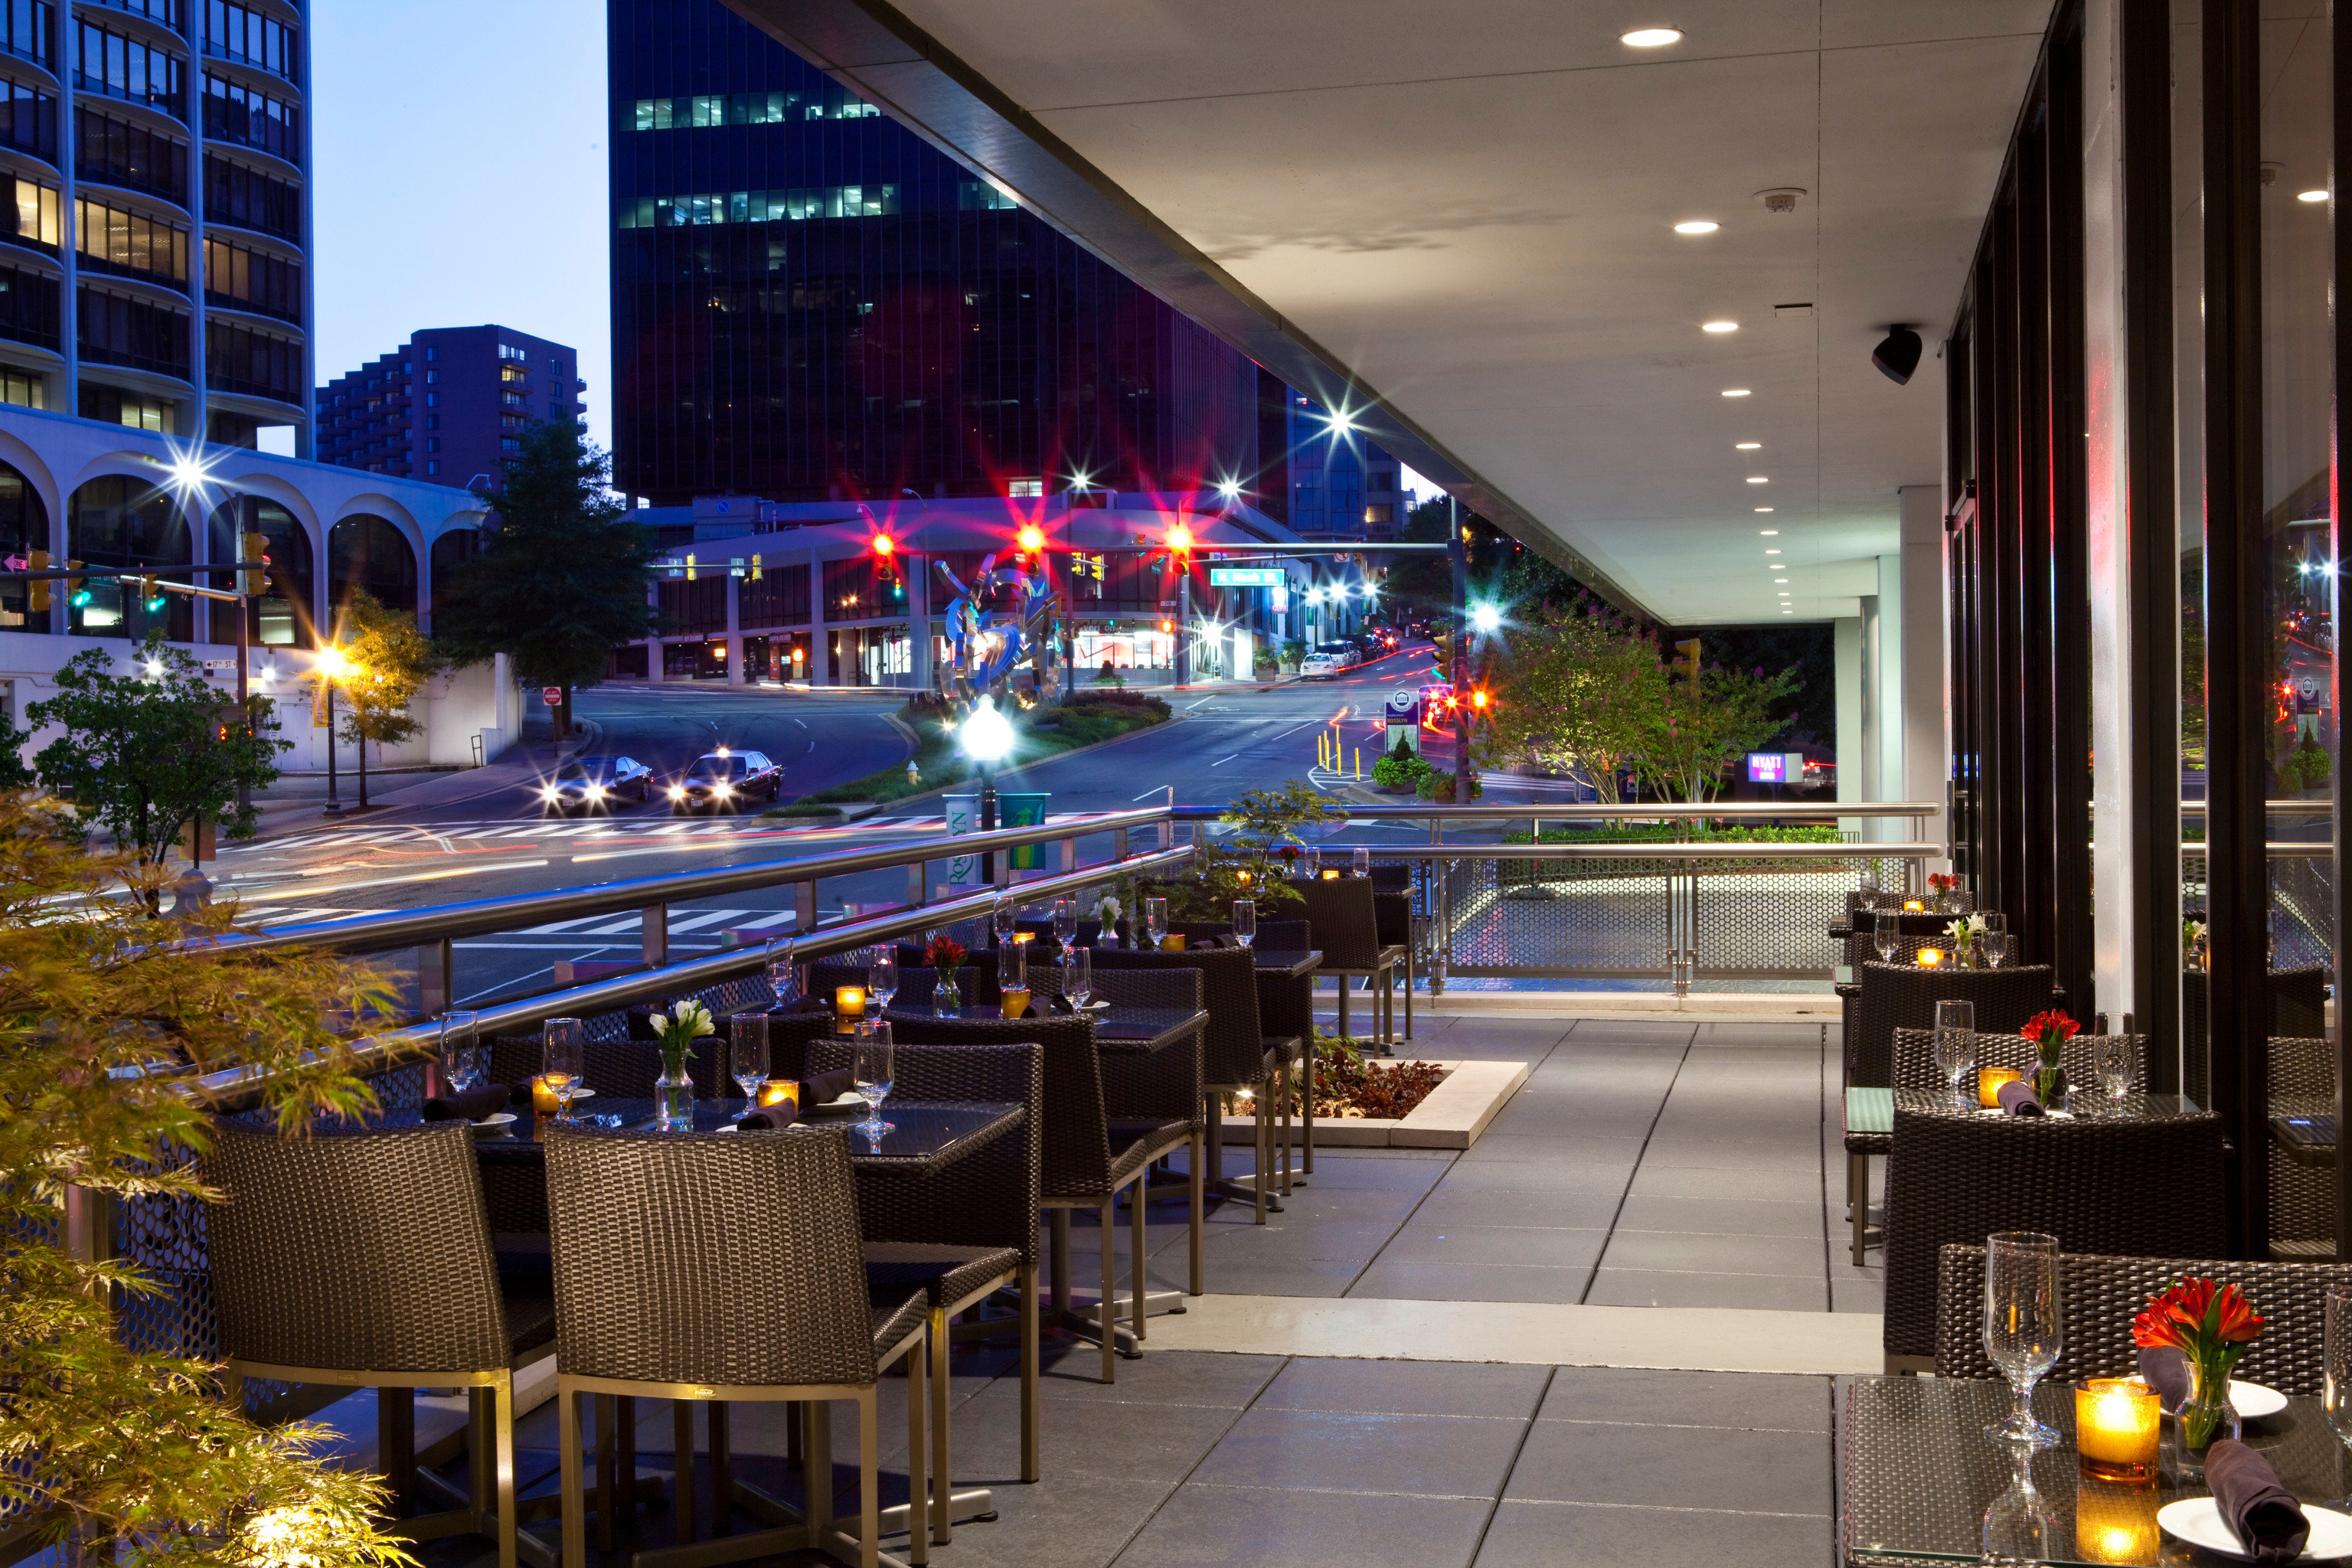 night restaurant Downtown light plaza shopping mall Bar convention center